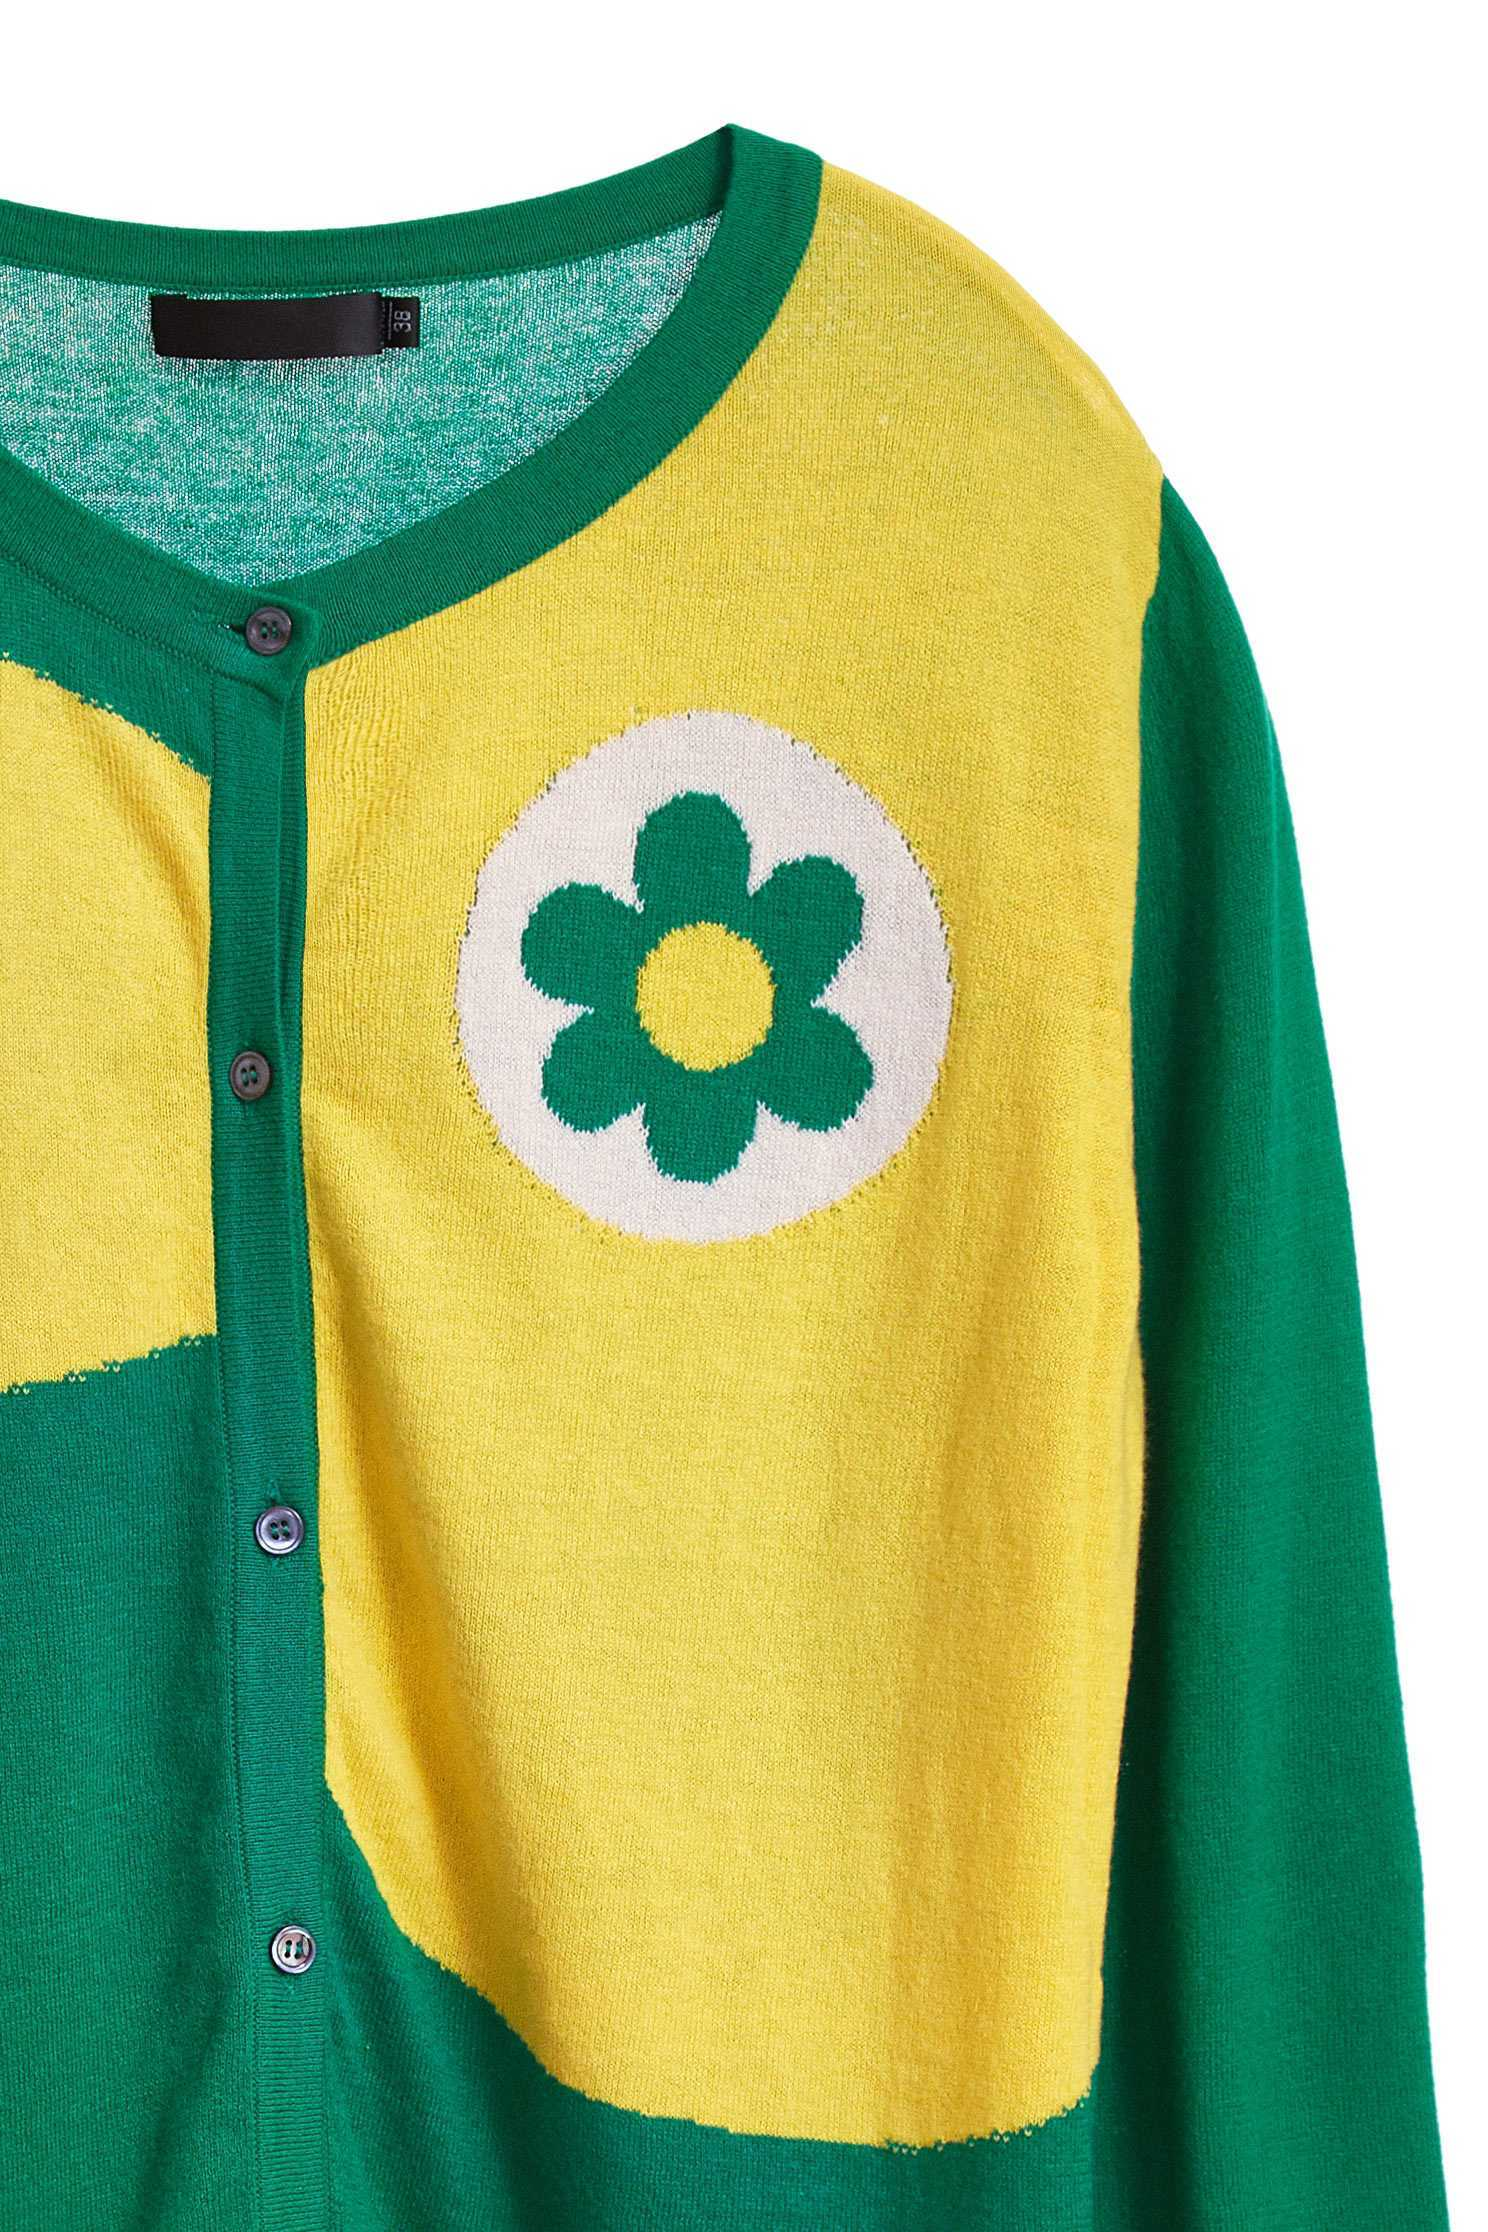 Flower design coat,earthsigns,outerwear,cotton,cardigan,knittedjacket,longsleeveouterwear